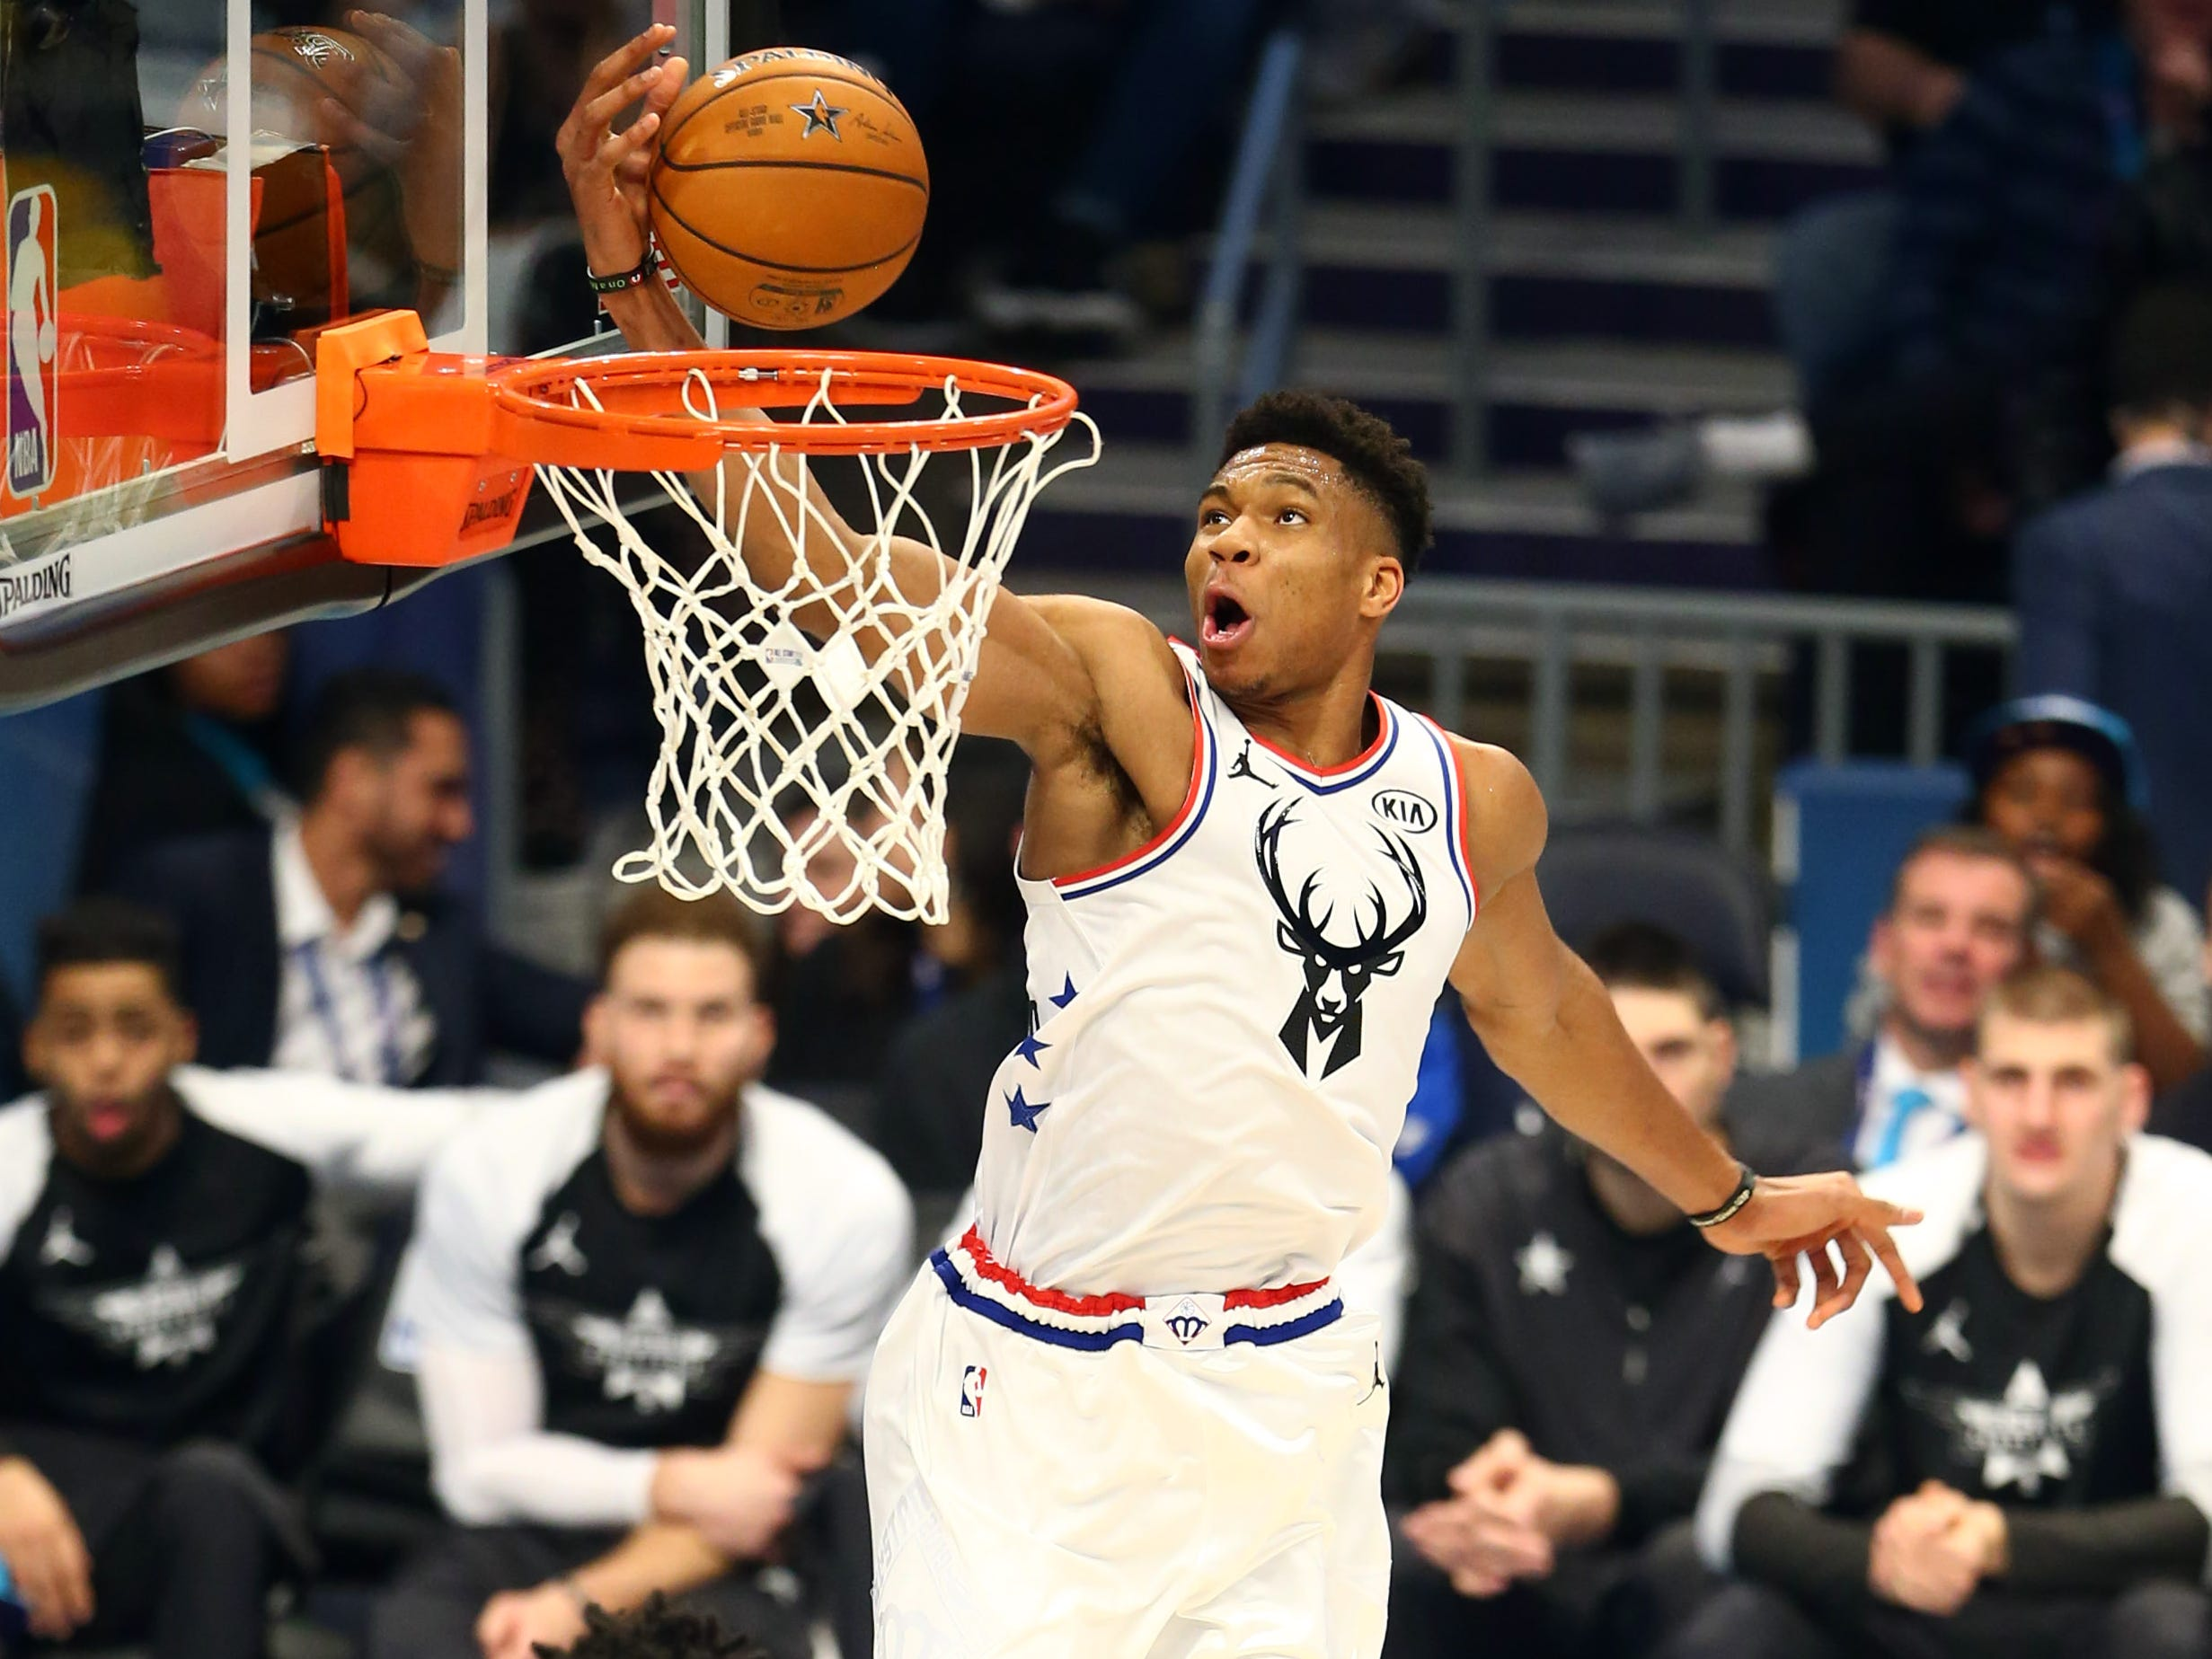 Giannis Antetokounmpo elevates for two of his 38 points on Sunday night in the NBA All-Star Game.